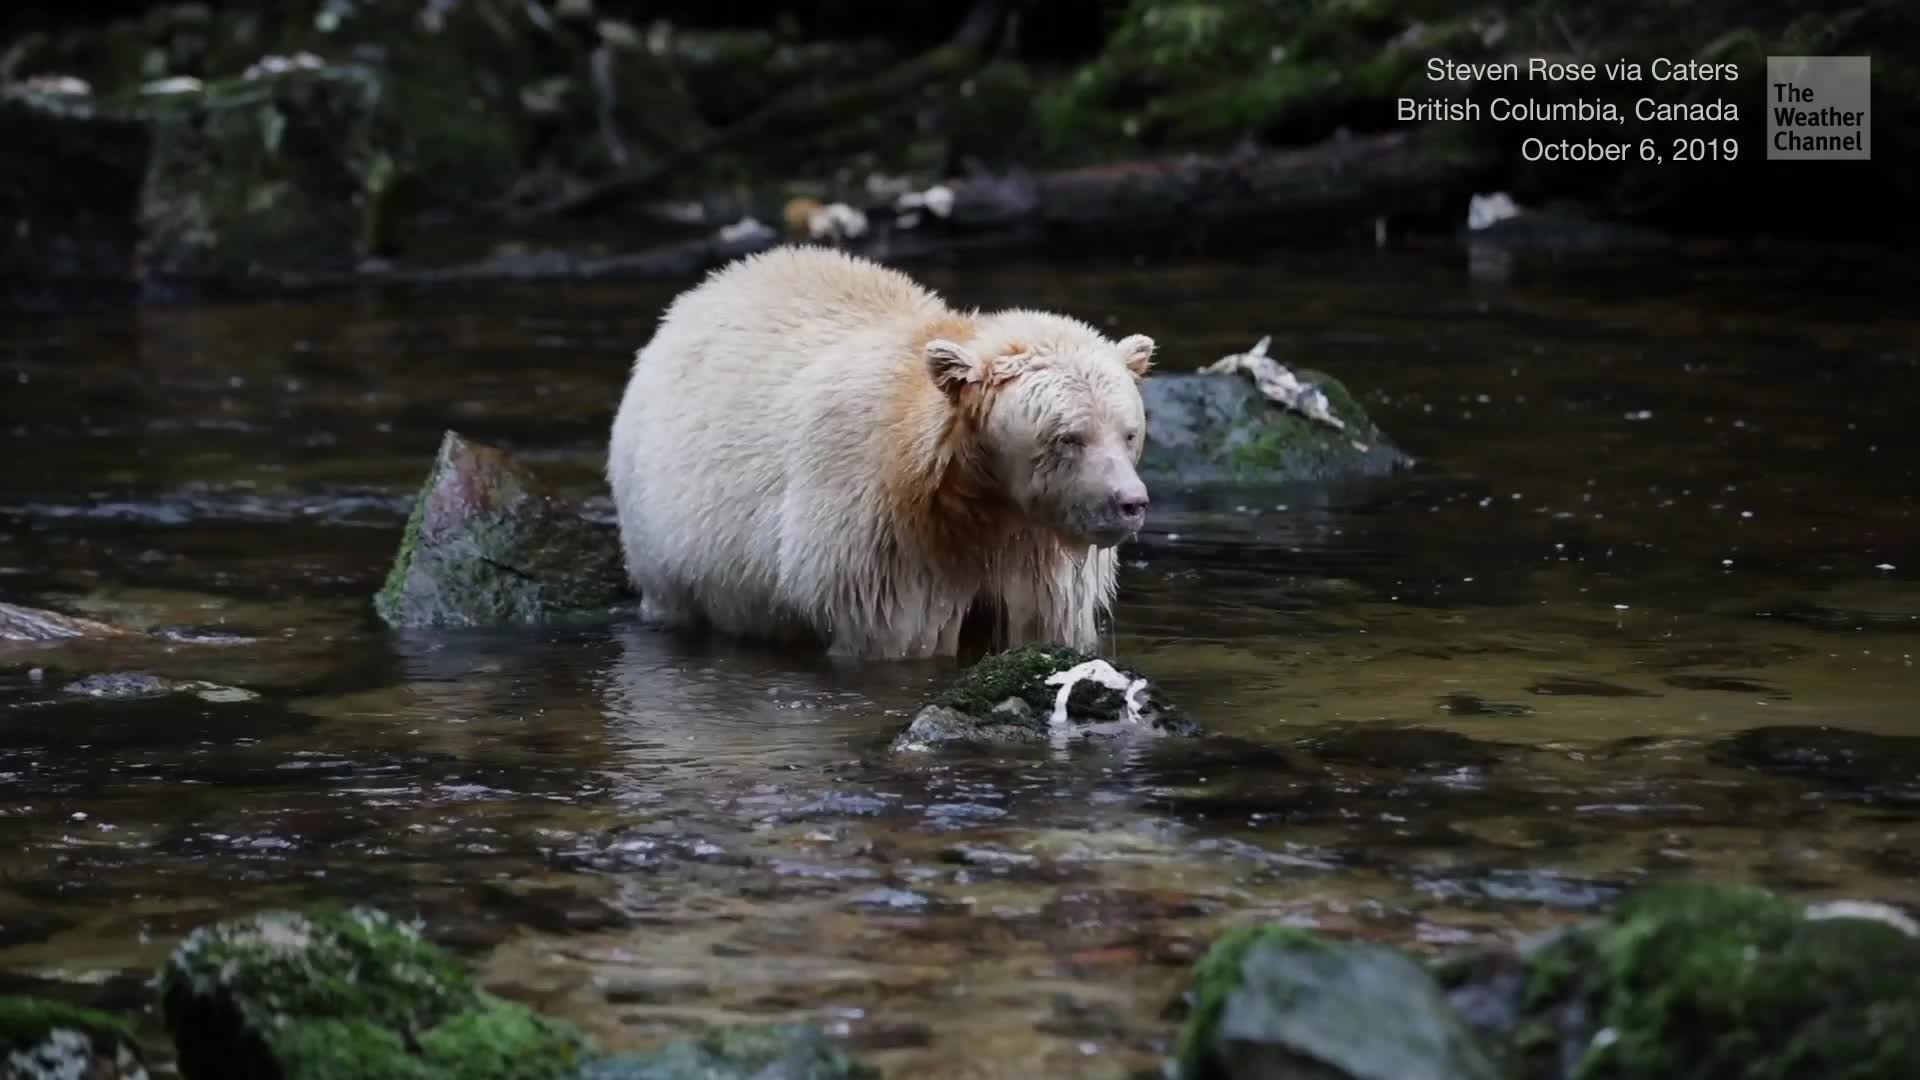 Rare video emerged of a spirit bear fishing in British Columbia. It's estimated only about 400 of them exist in the wild.